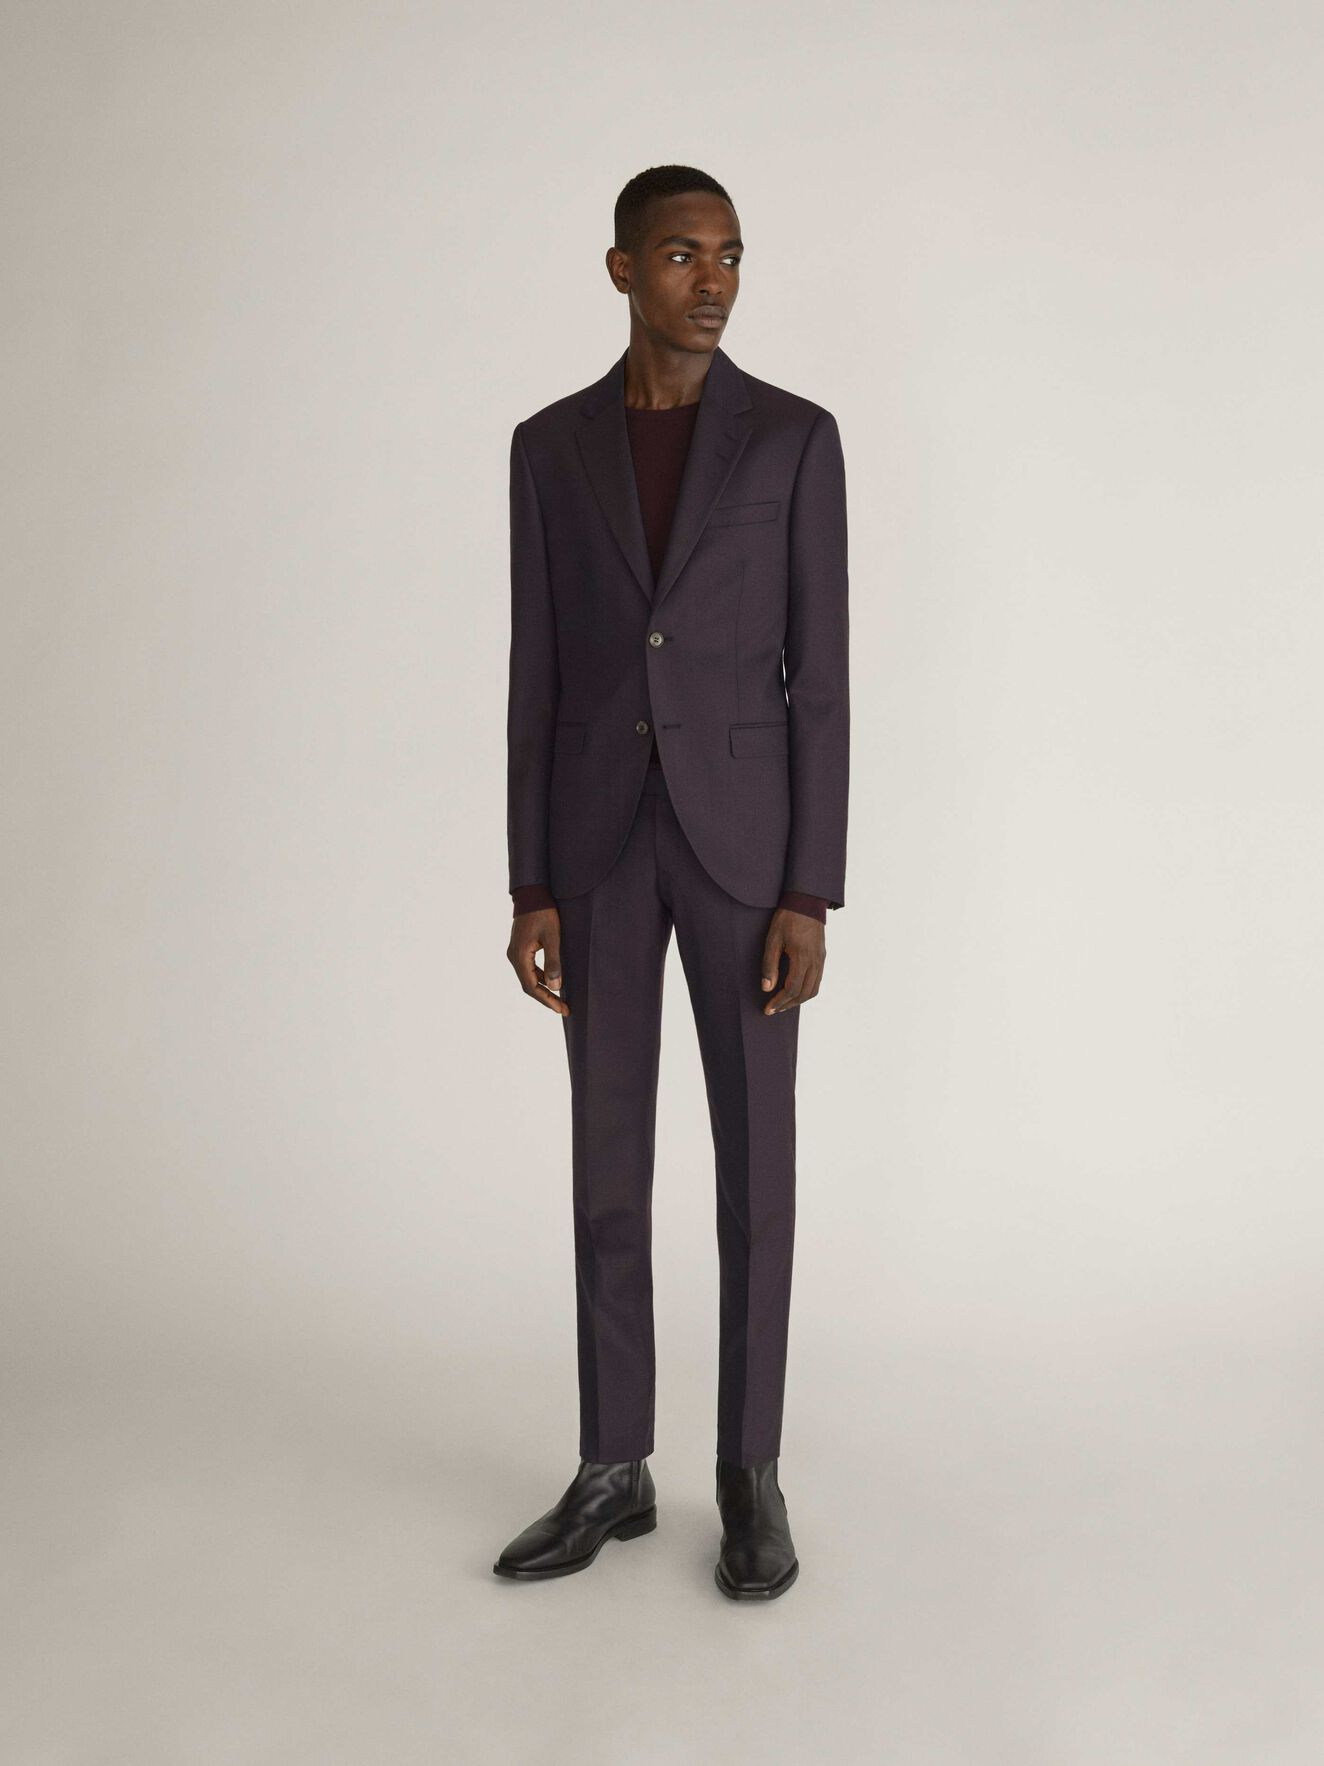 Tordon Hose in Noon Plum from Tiger of Sweden